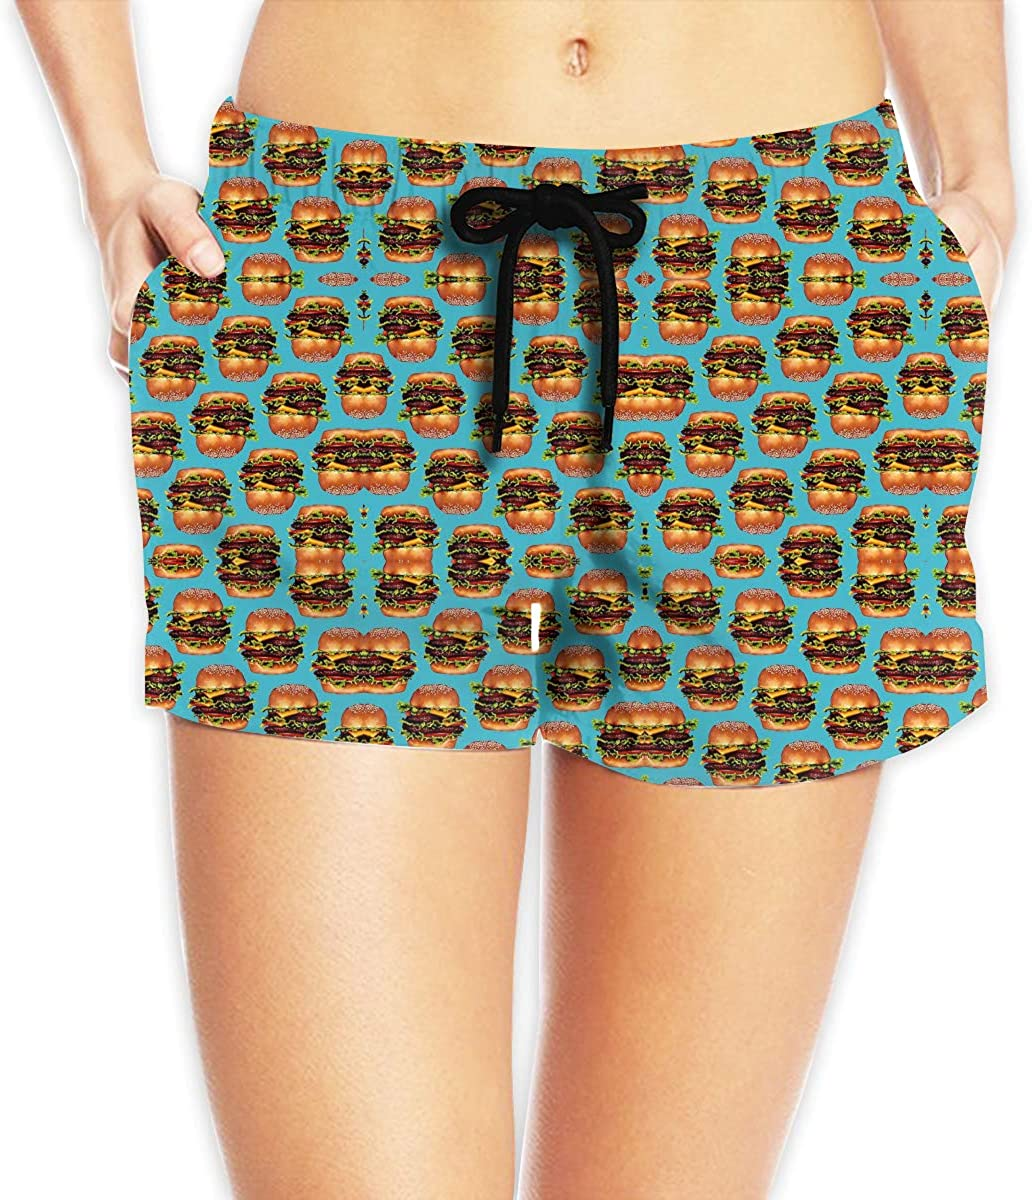 EYFlife Double Cheeseburger Hamburger Women Soft Elastic Shorts Casual Beach Shorts with Drawstring